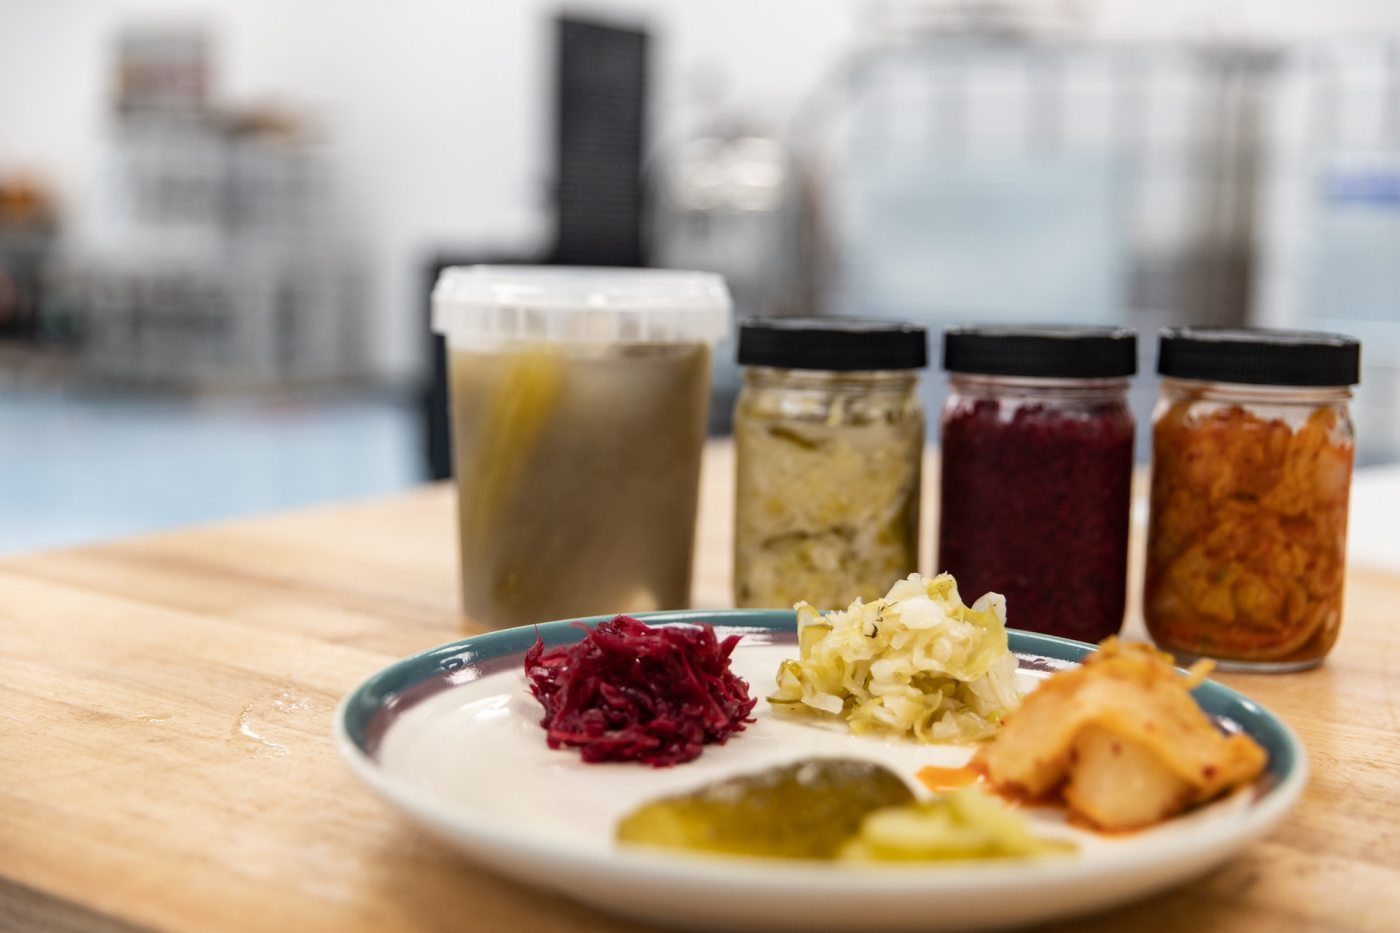 A sampling of Harvest Roots incredible ferments, including jalepeno pickles, dill pickle sauerkraut and kimchi